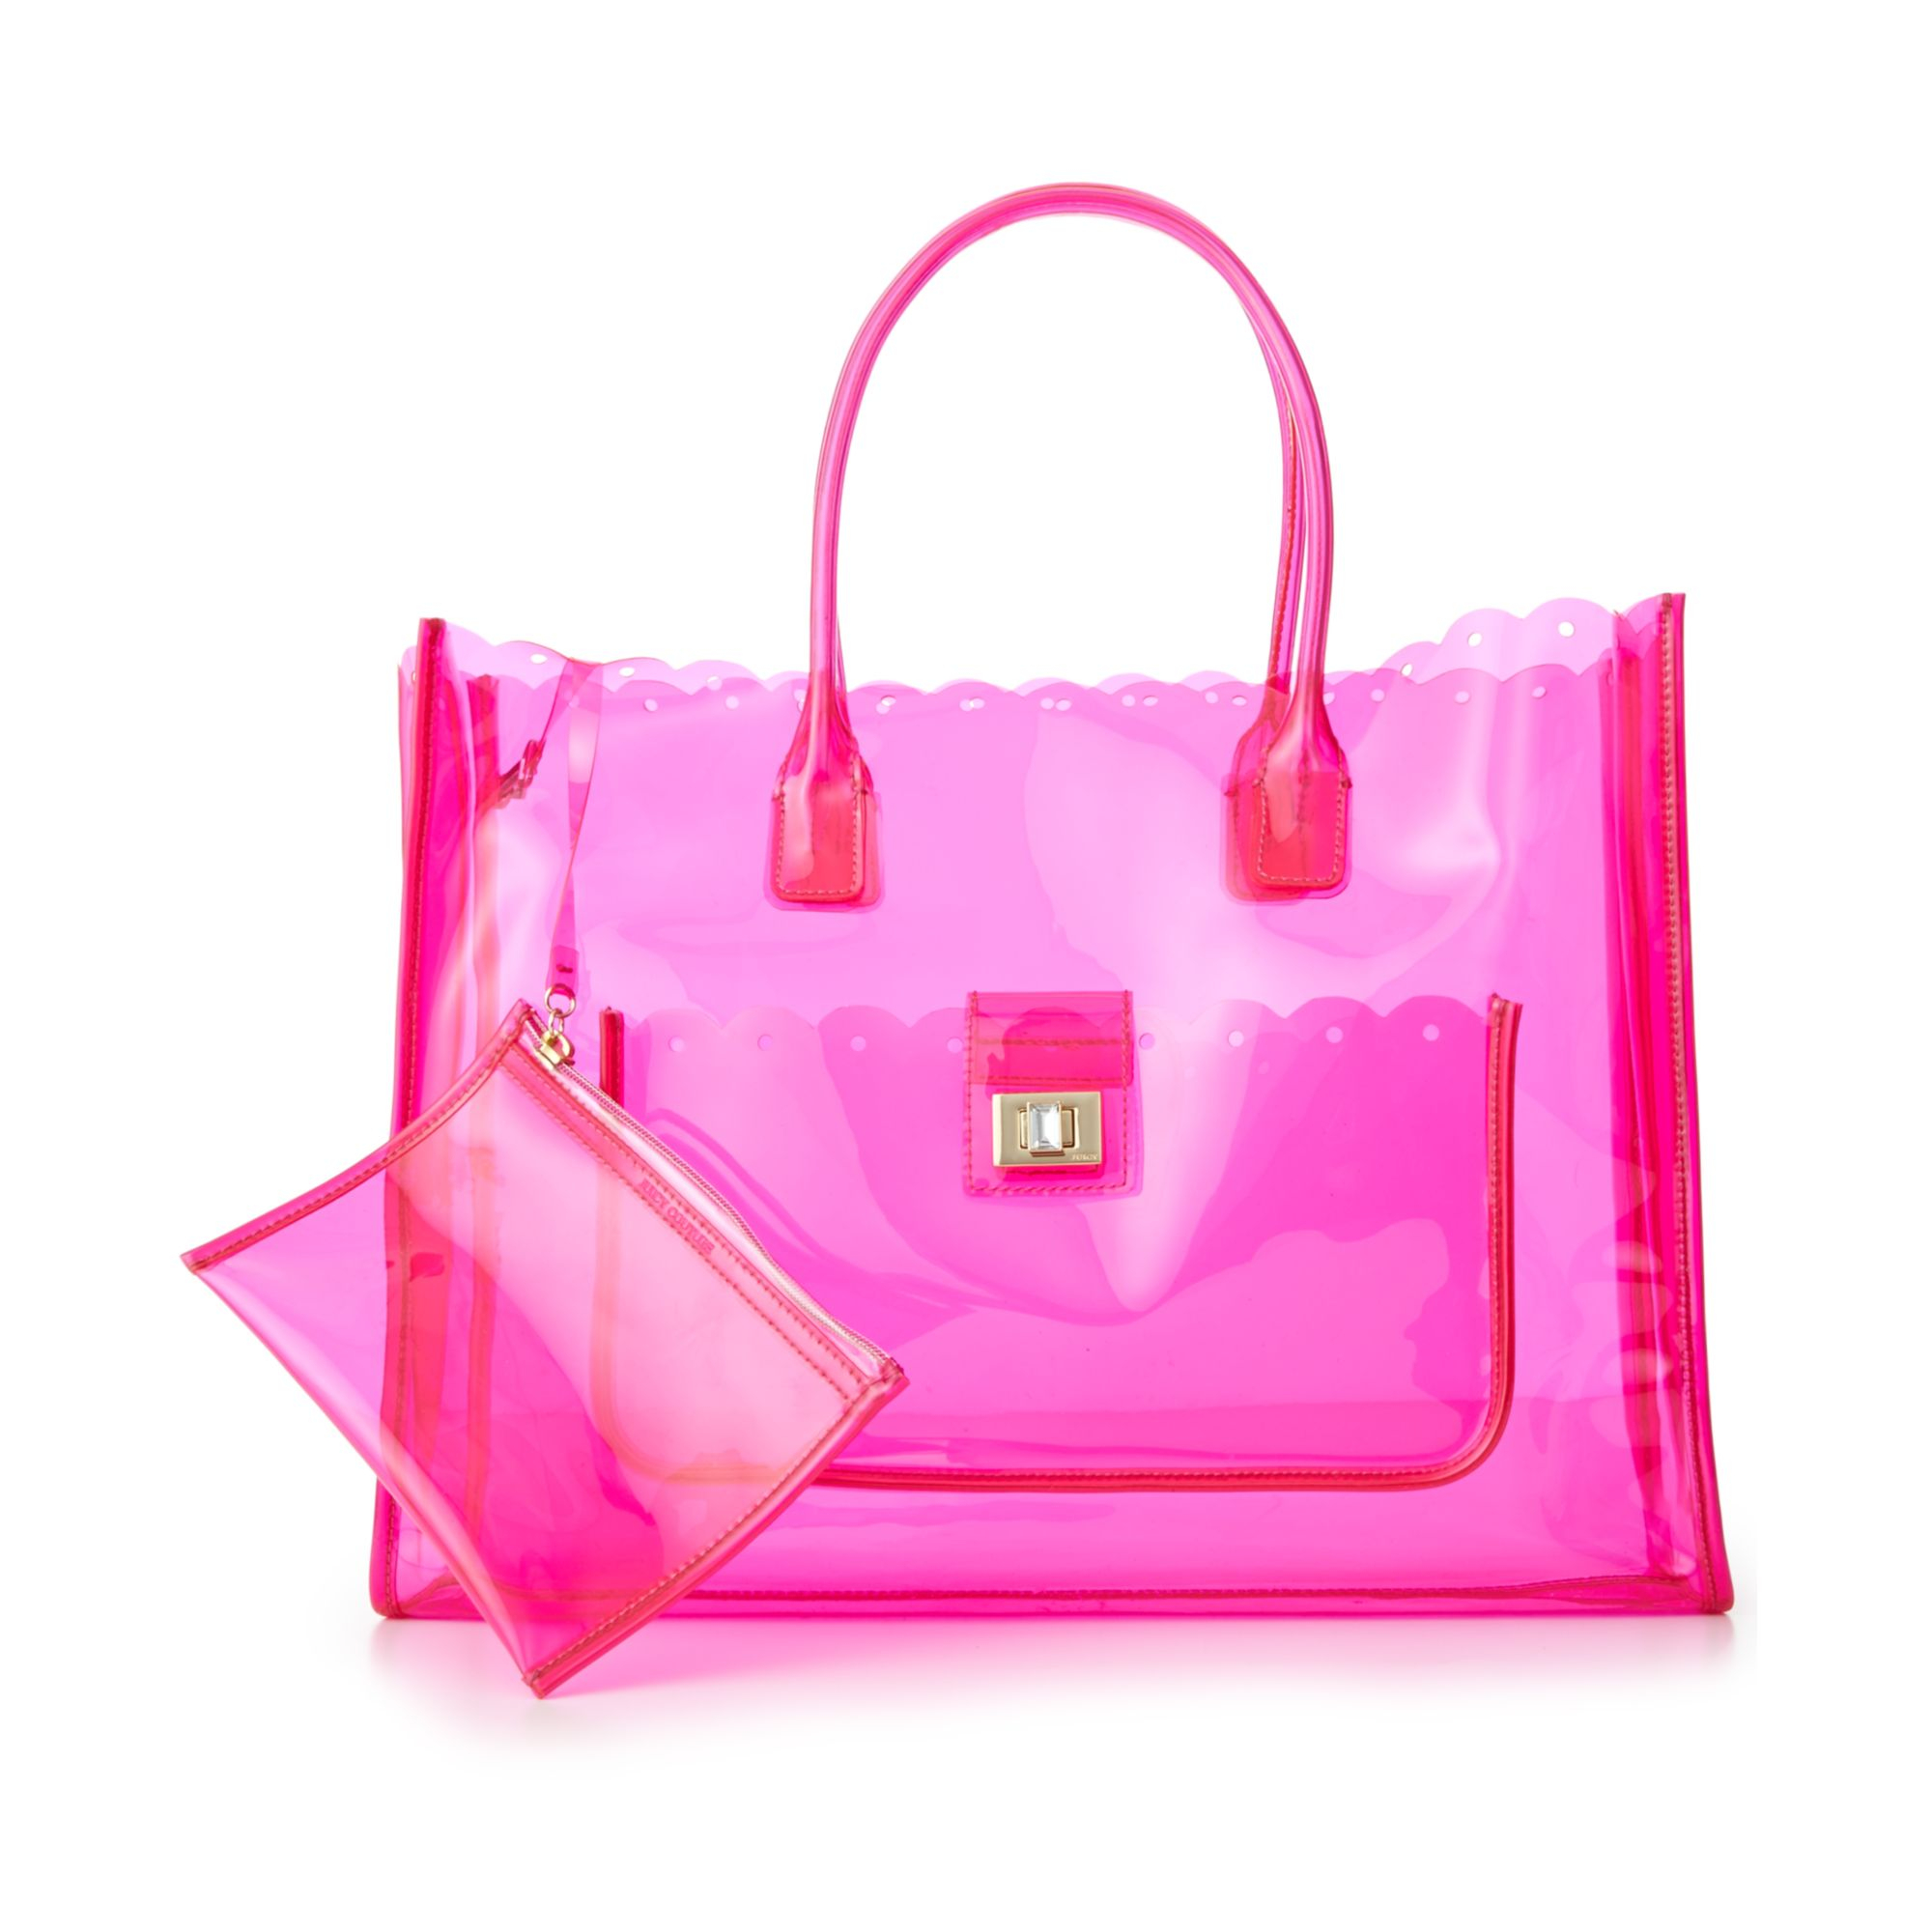 Juicy couture Silverlake Clear Beach Tote in Pink | Lyst